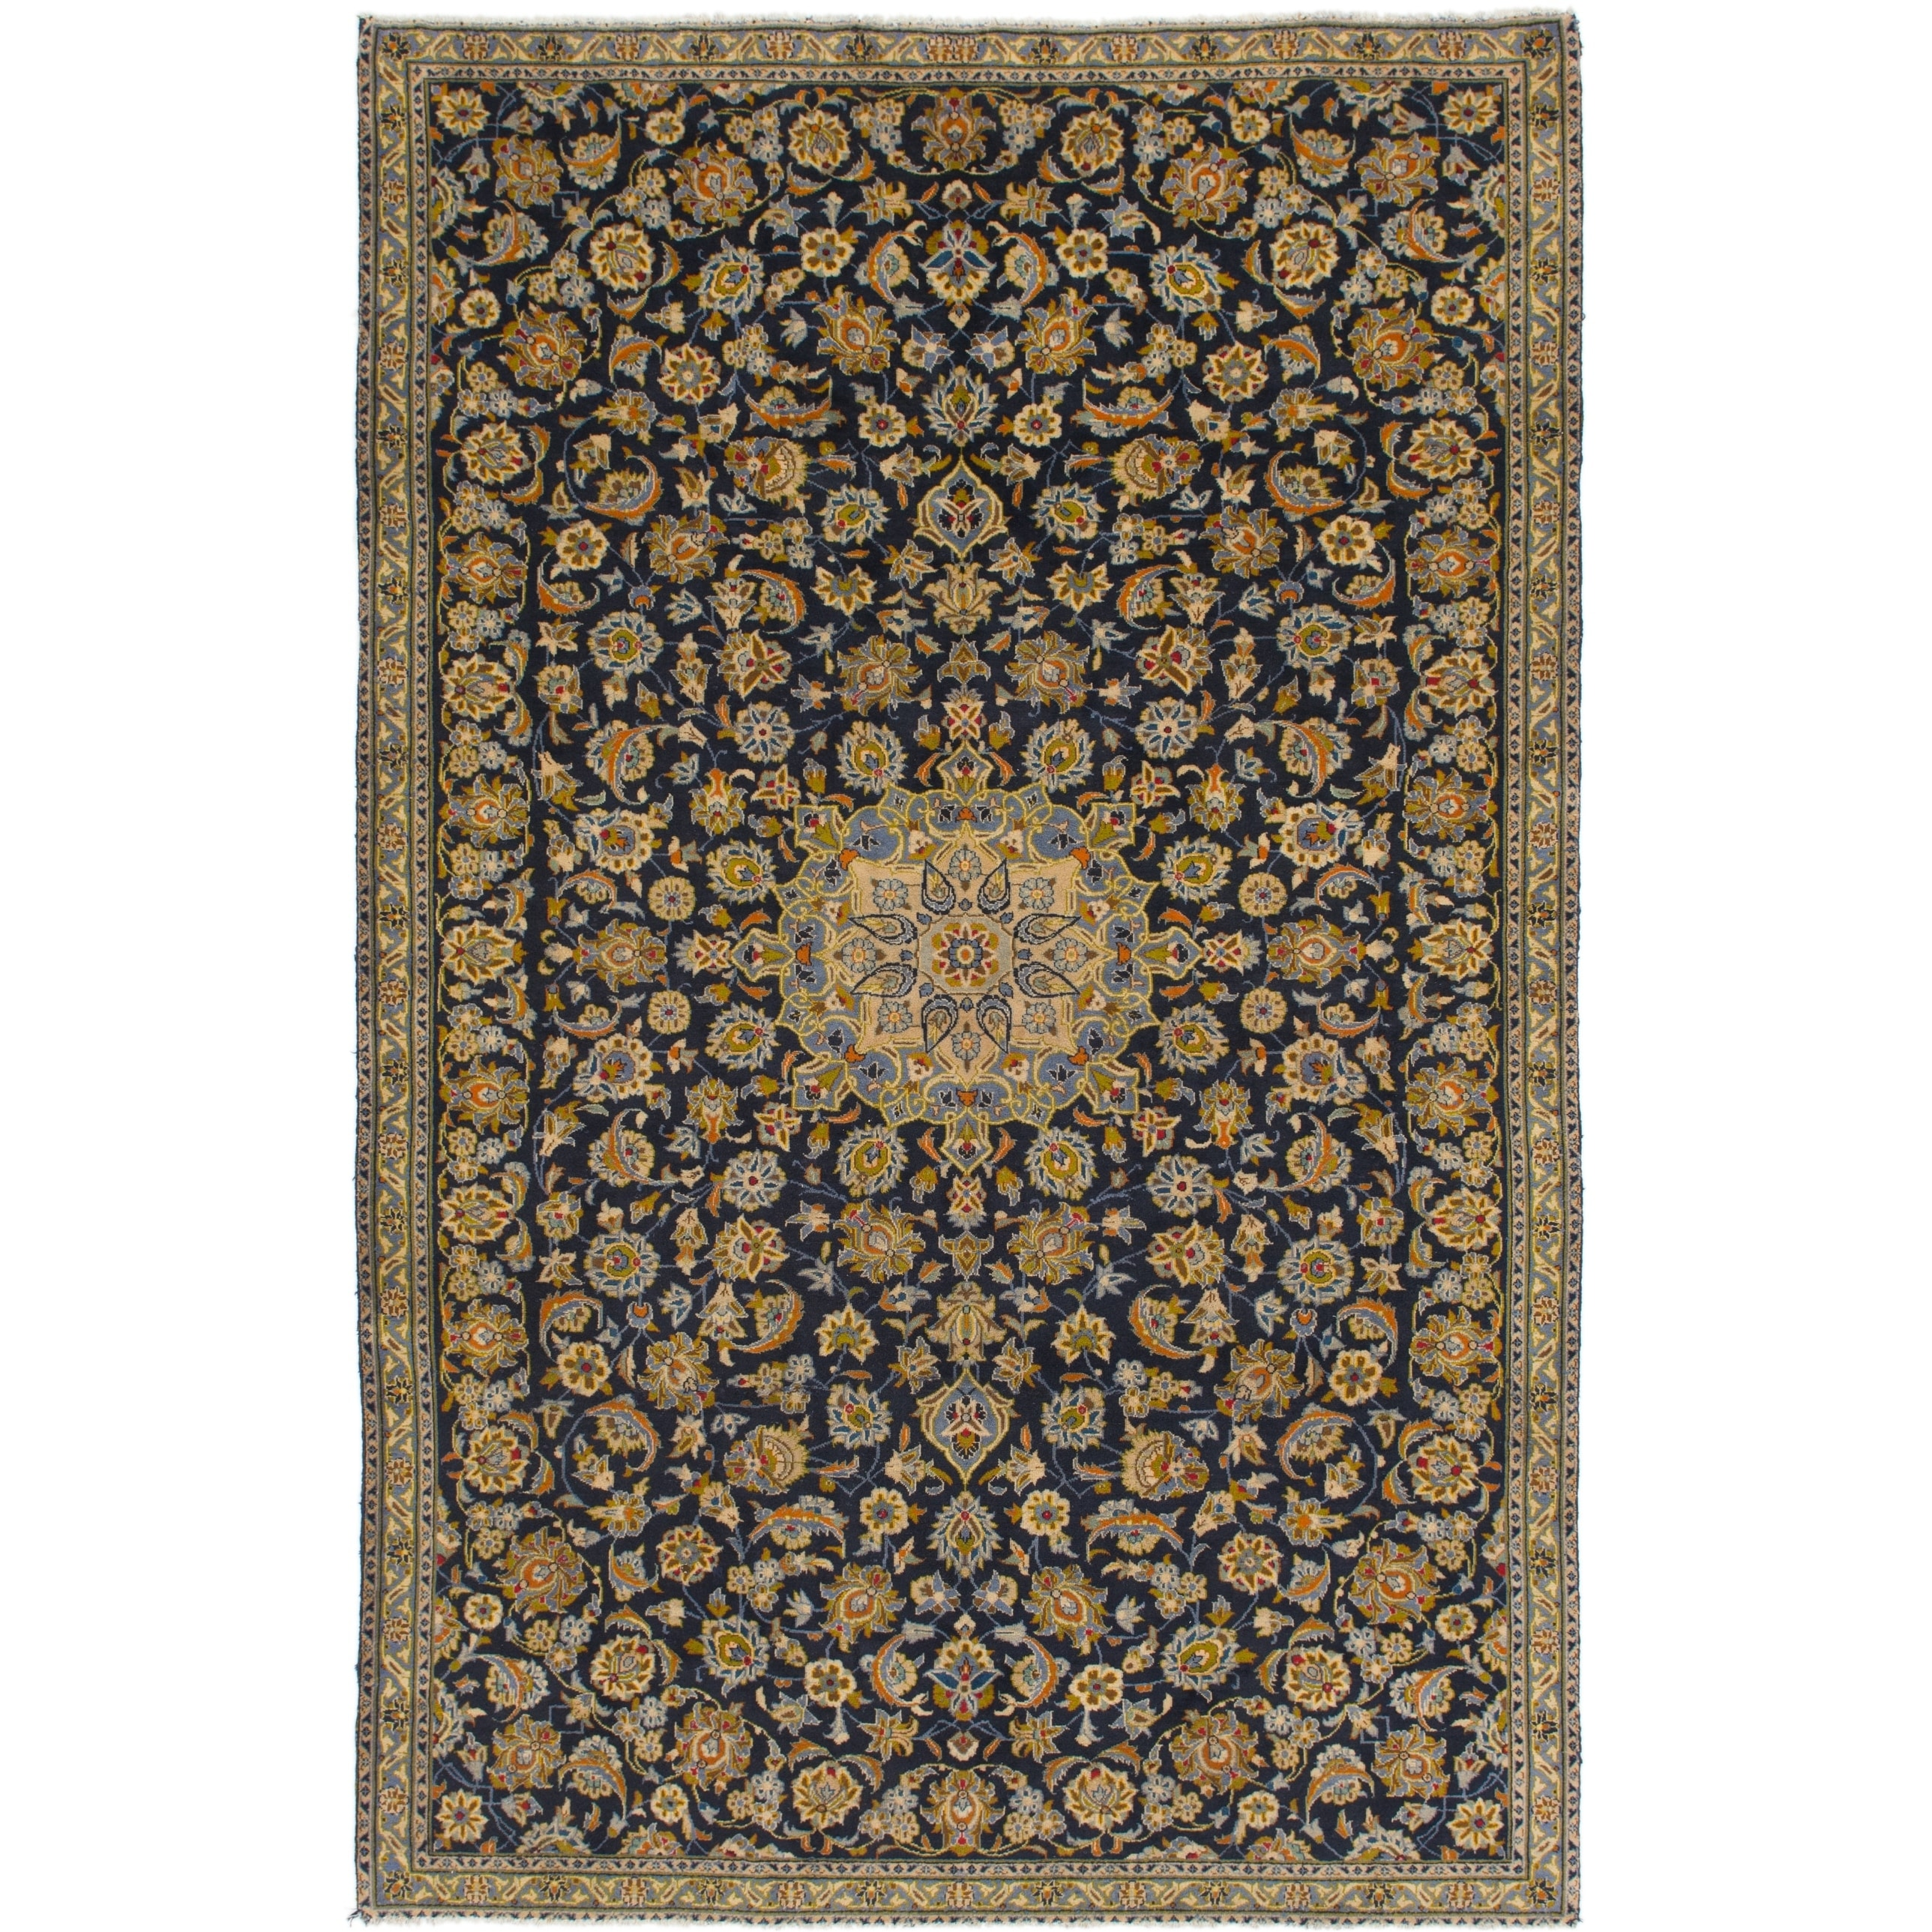 Hand Knotted Kashan Semi Antique Wool Area Rug - 7 6 x 11 10 (Navy blue - 7 6 x 11 10)